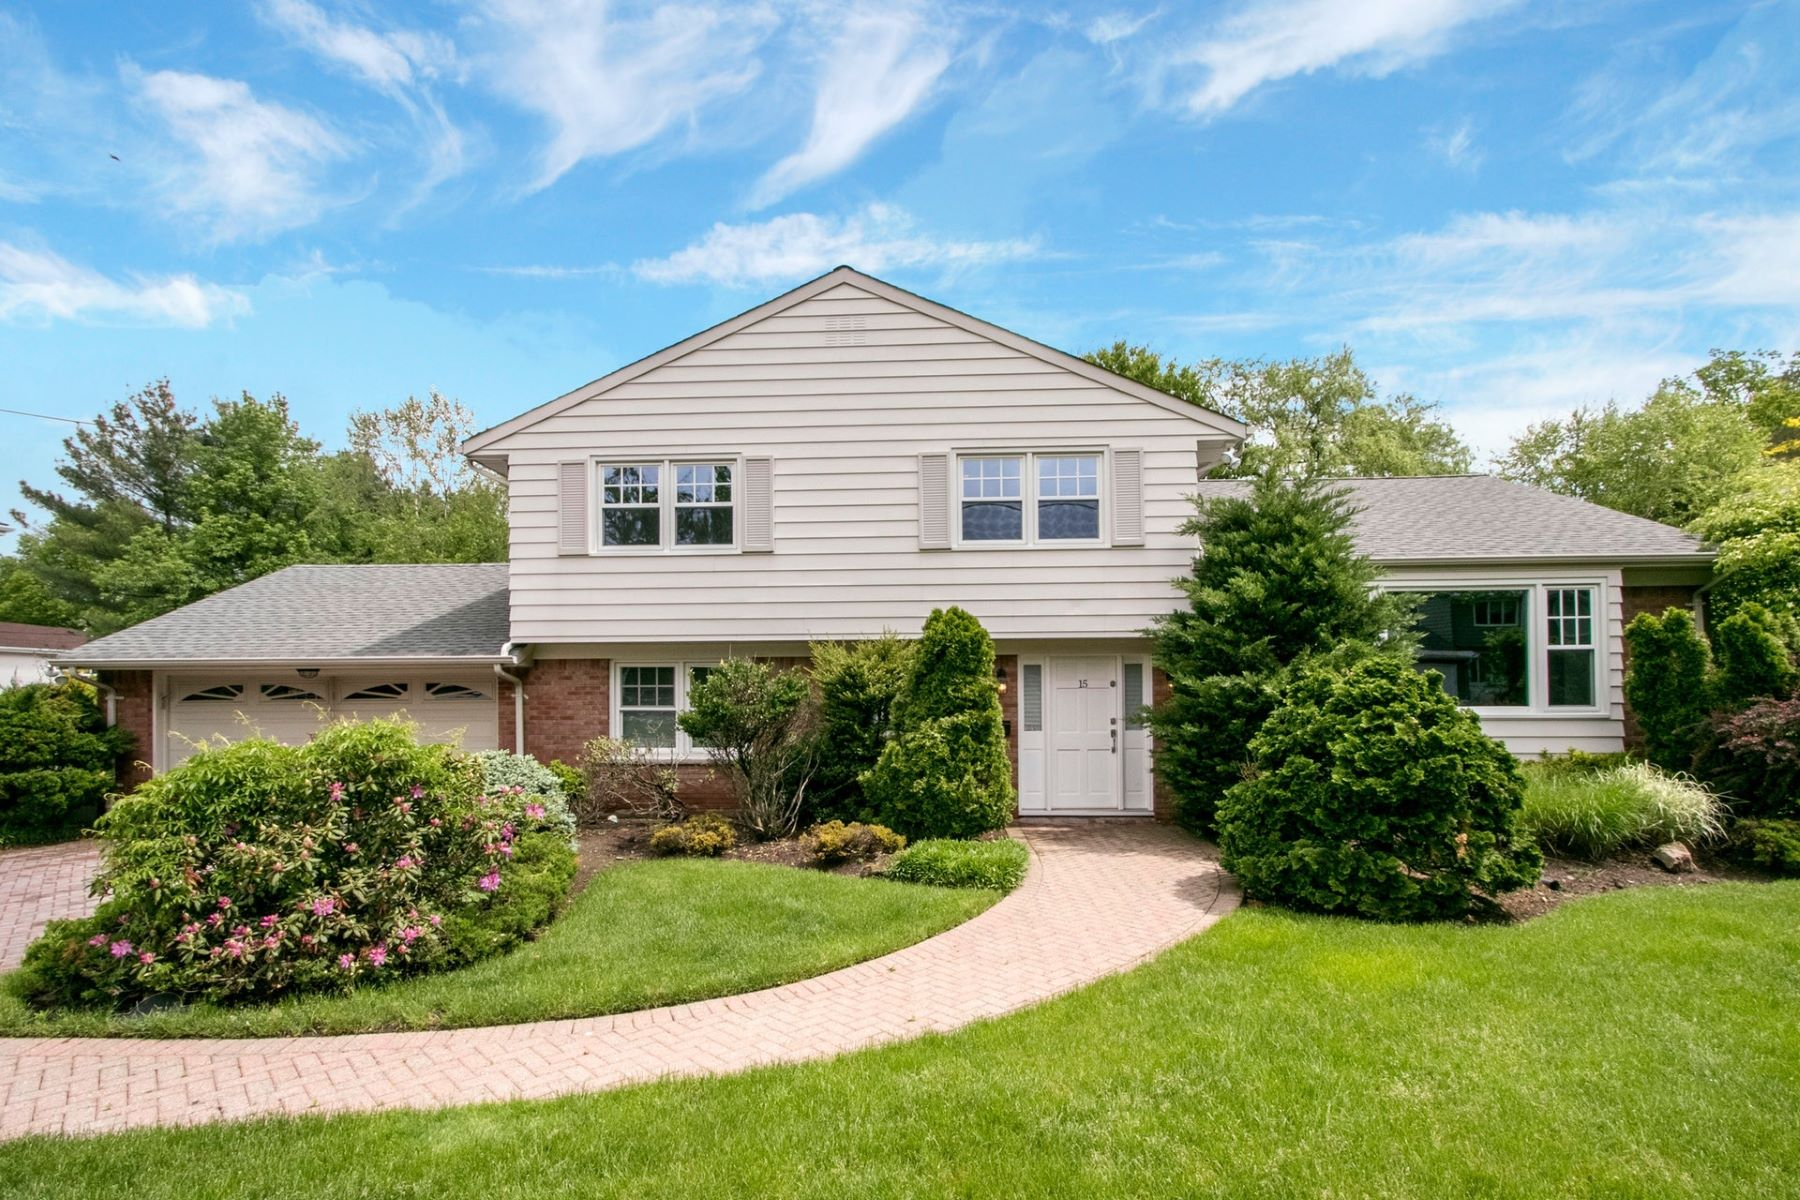 Single Family Home for Sale at Great Location! 15 Egan Pl, Englewood Cliffs, New Jersey 07632 United States